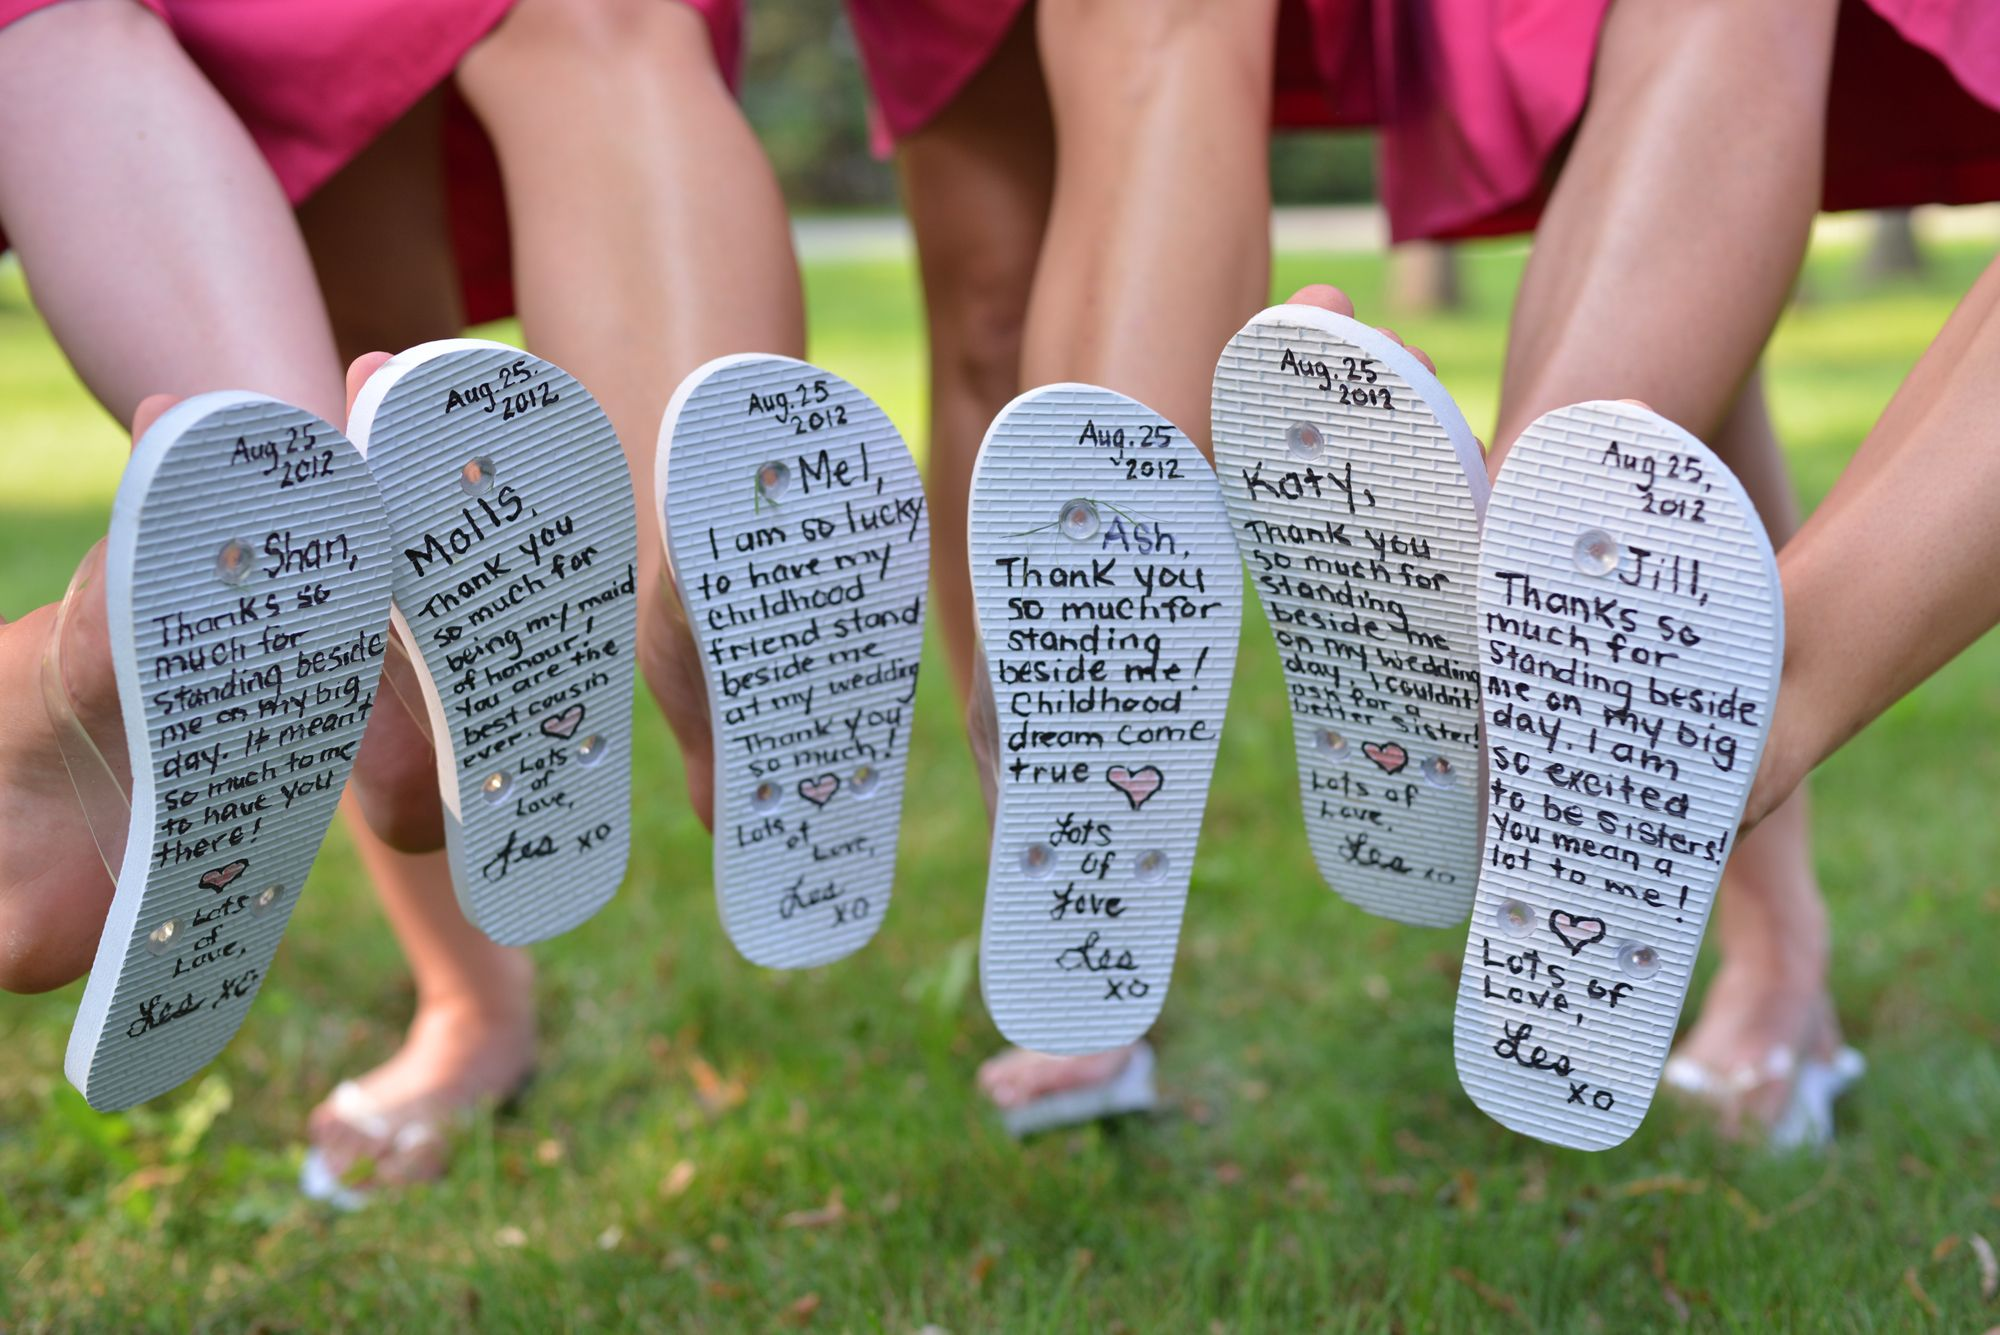 db66a532339ba8 Our Wedding · Flip Flop Gift Idea for Bridesmaids http   www.deal-shop.